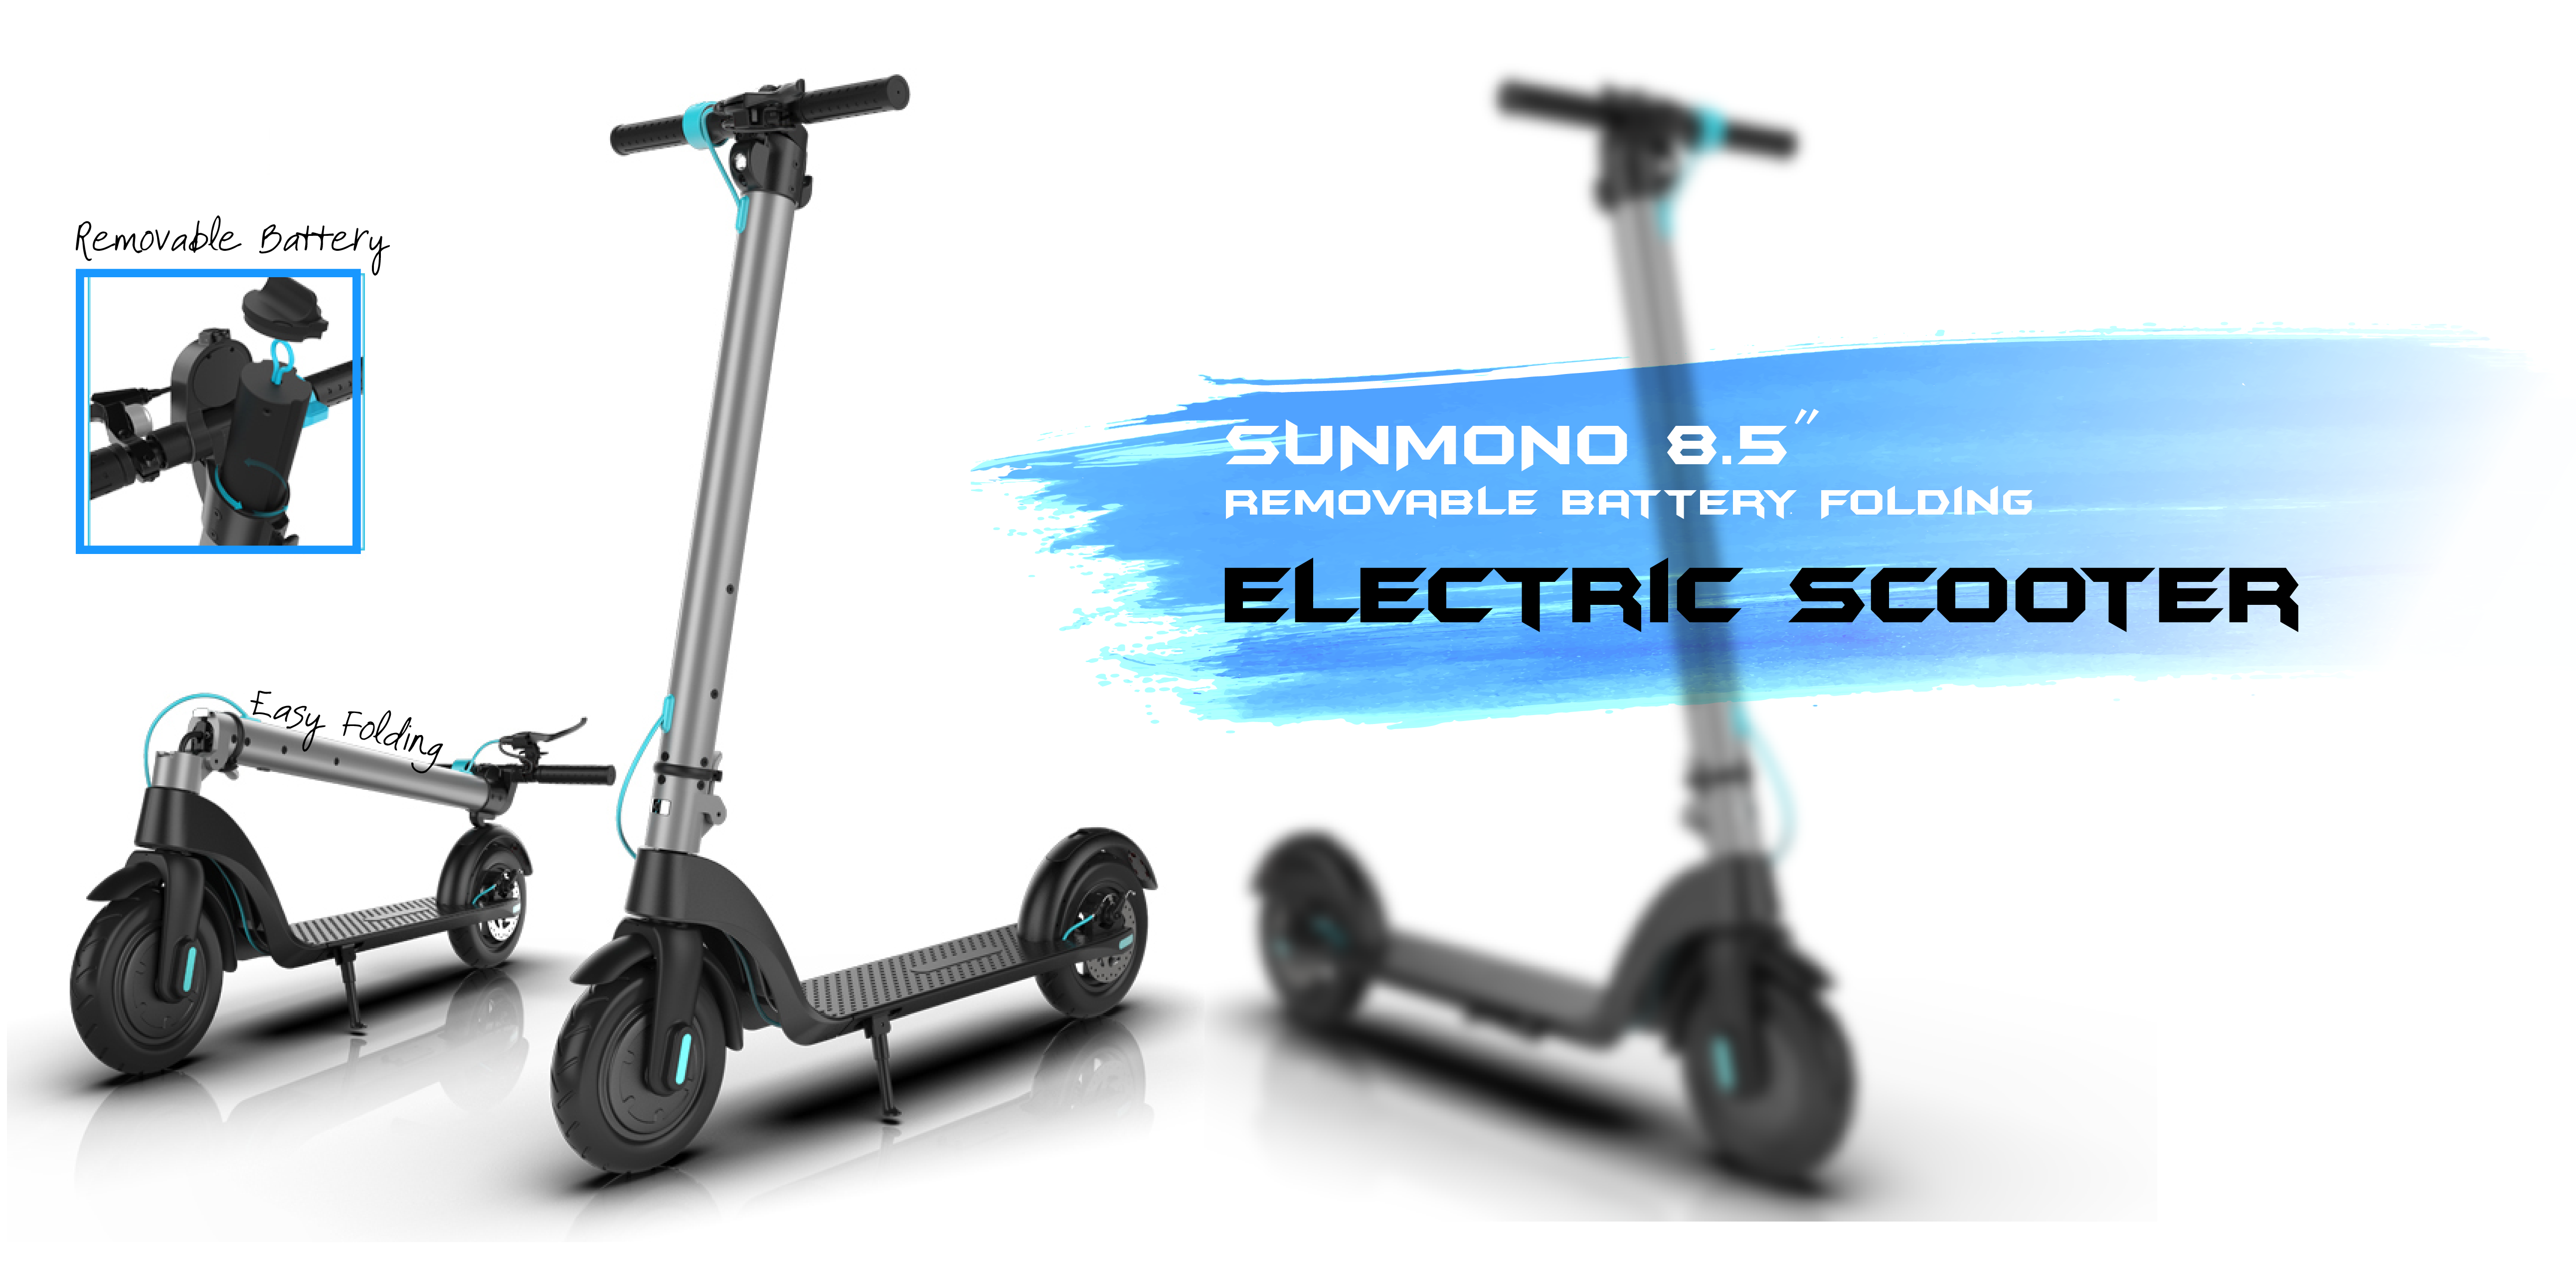 Sunmono-Folding-Electric-Scooter-S1-Display-Banner-2